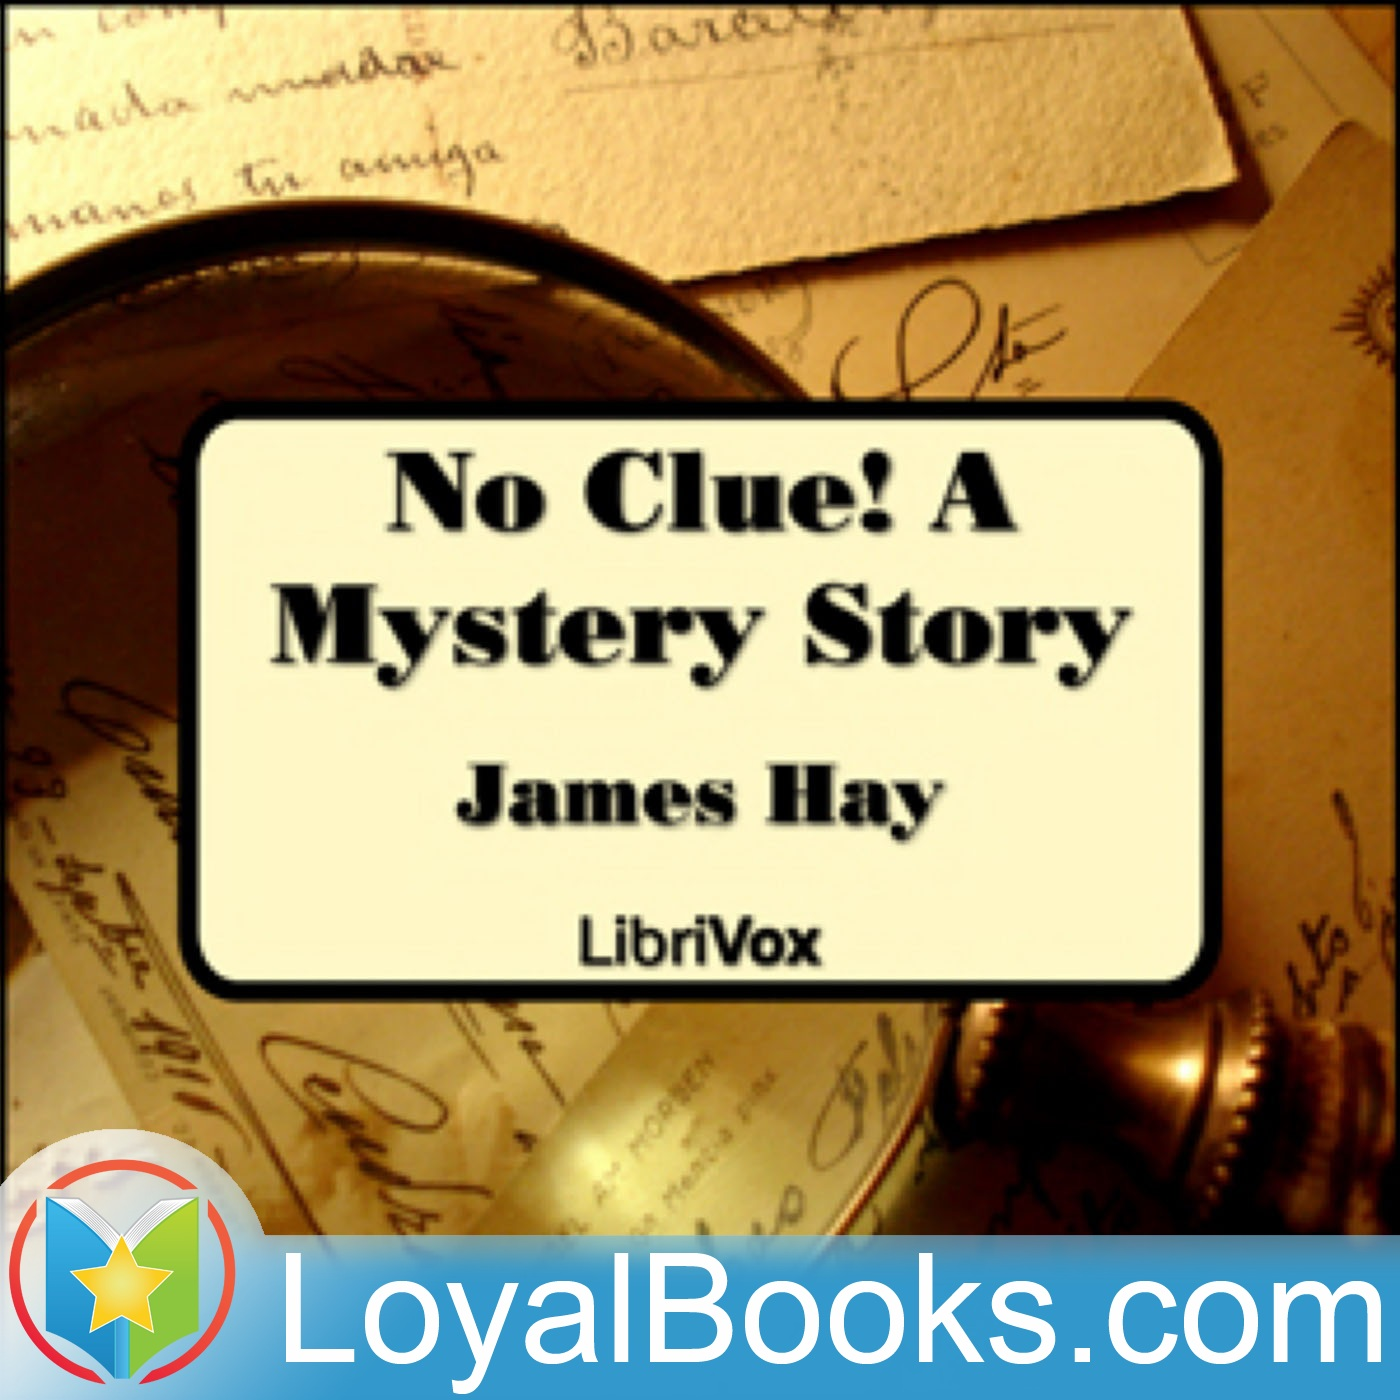 <![CDATA[No Clue!  A Mystery Story by James Hay]]>